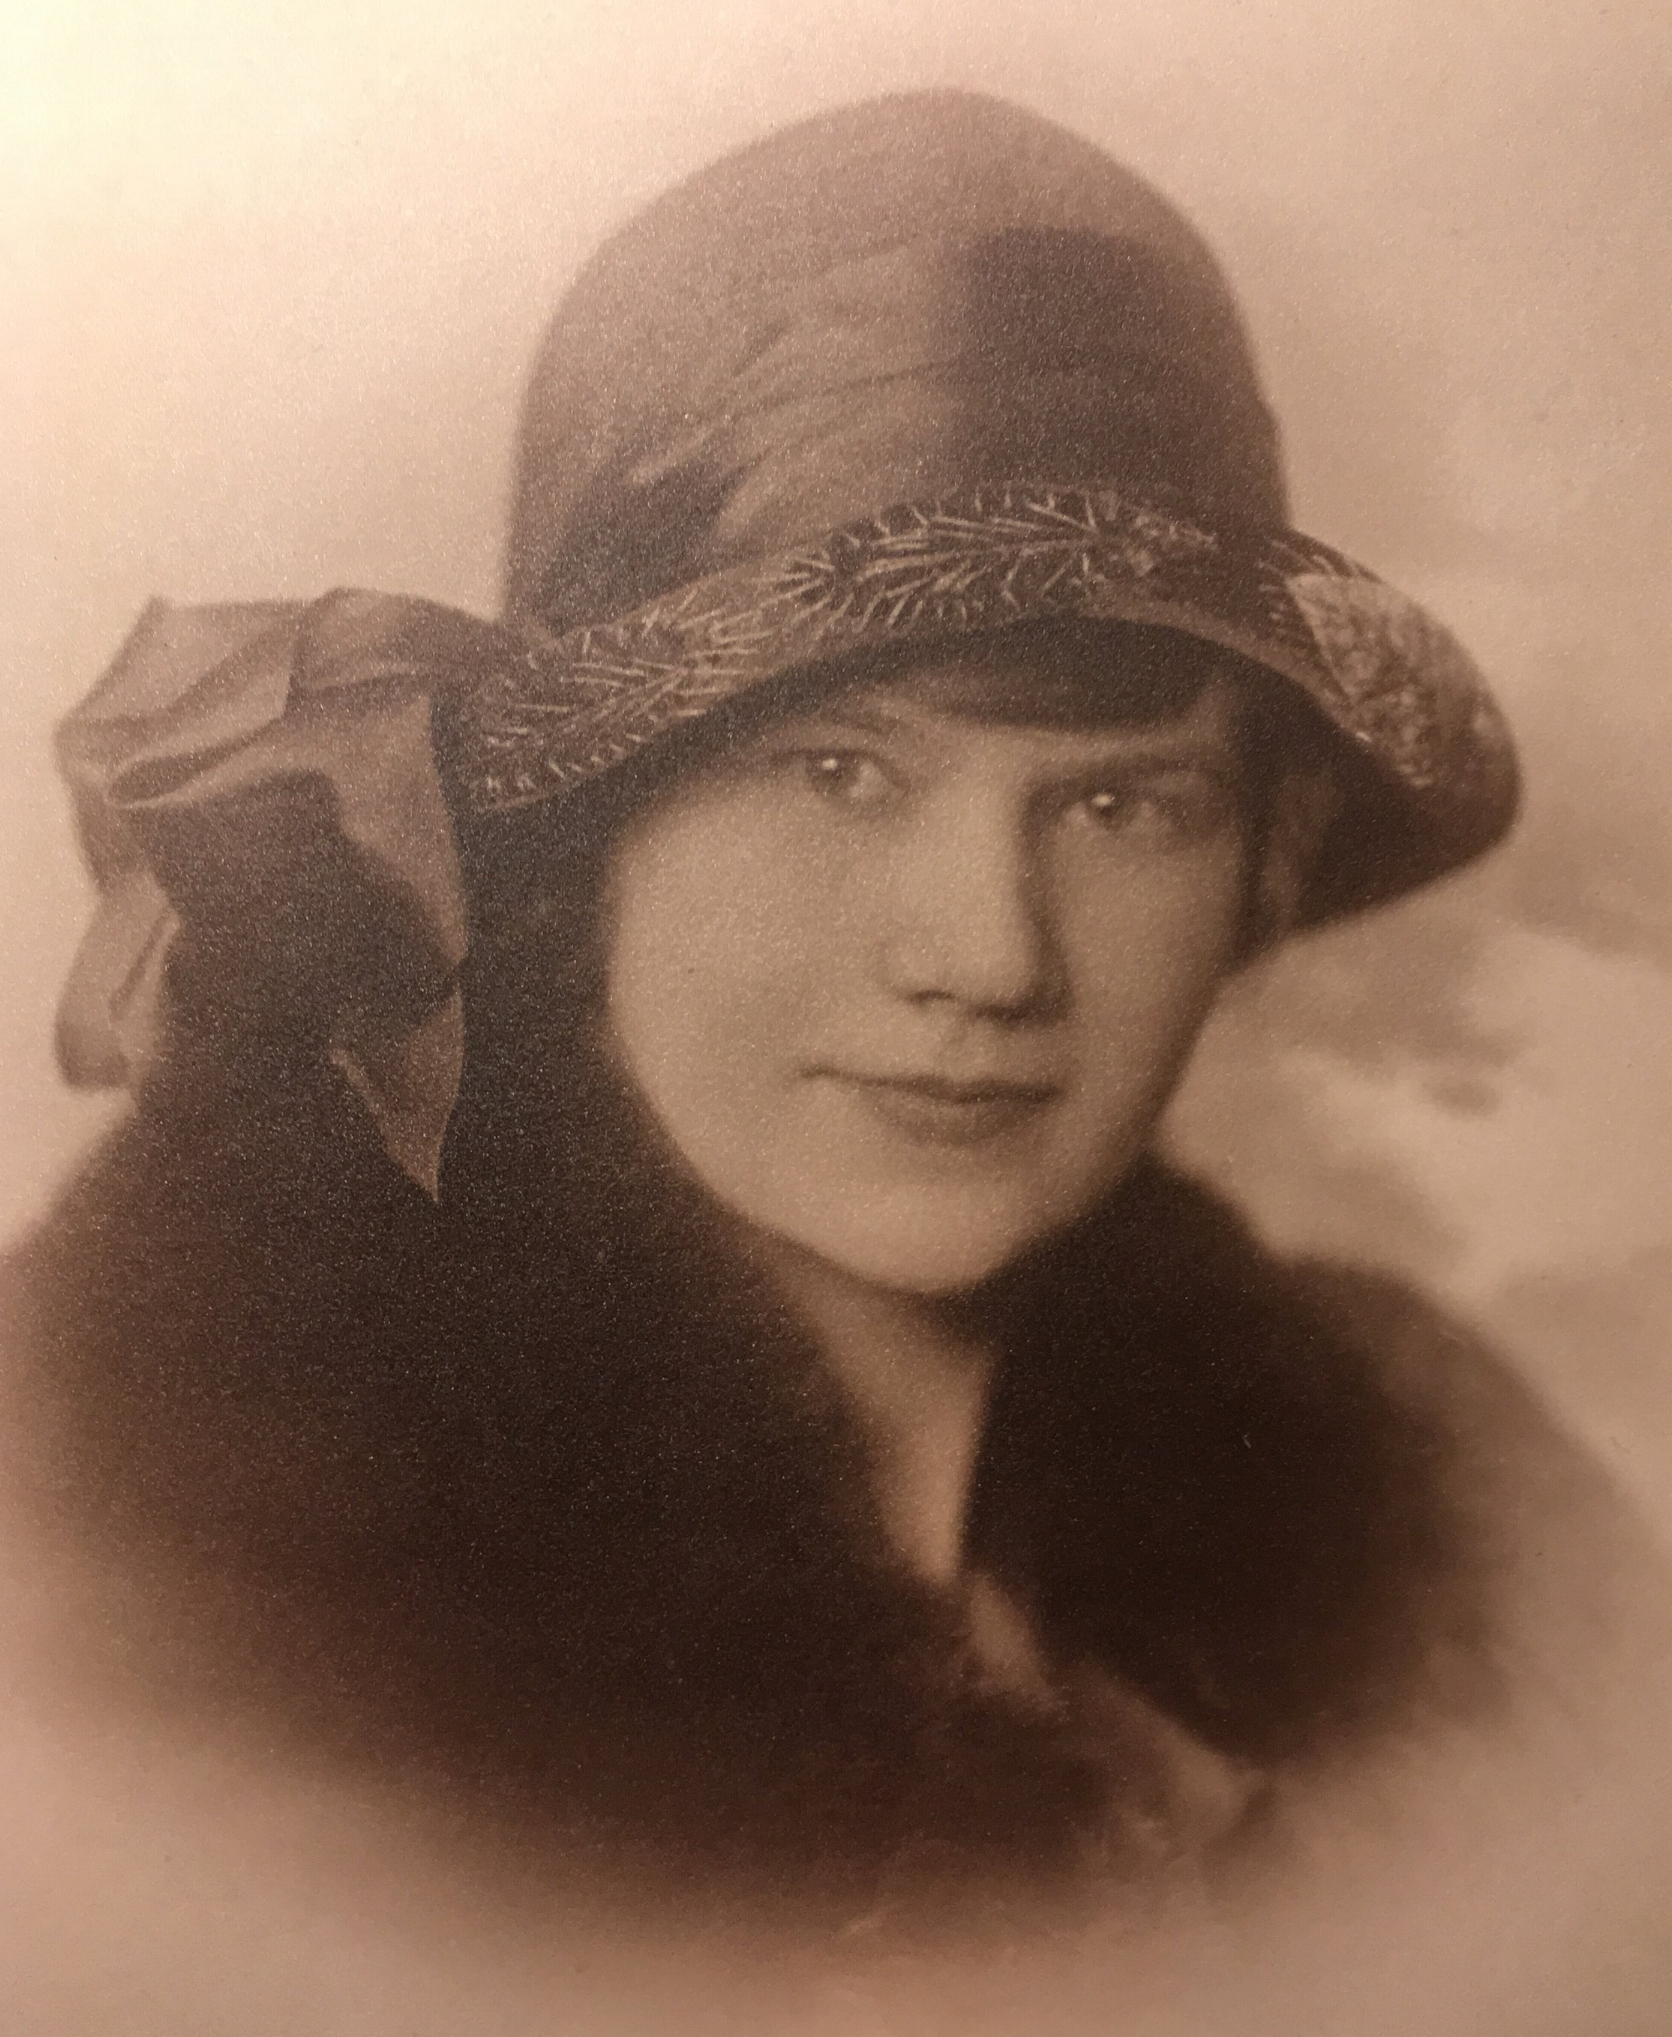 Alma Bruneck aka 'Nana', my grandmother taught me how to knit. She arrived in the USA from Riga, Latvia 🇦🇹 in 1916 at the age of 17. Once stateside, she became a nurse and remained a faithful Lutheran 'til the end.🌿 Nana also taught my mother about gardening who in time taught me as well.